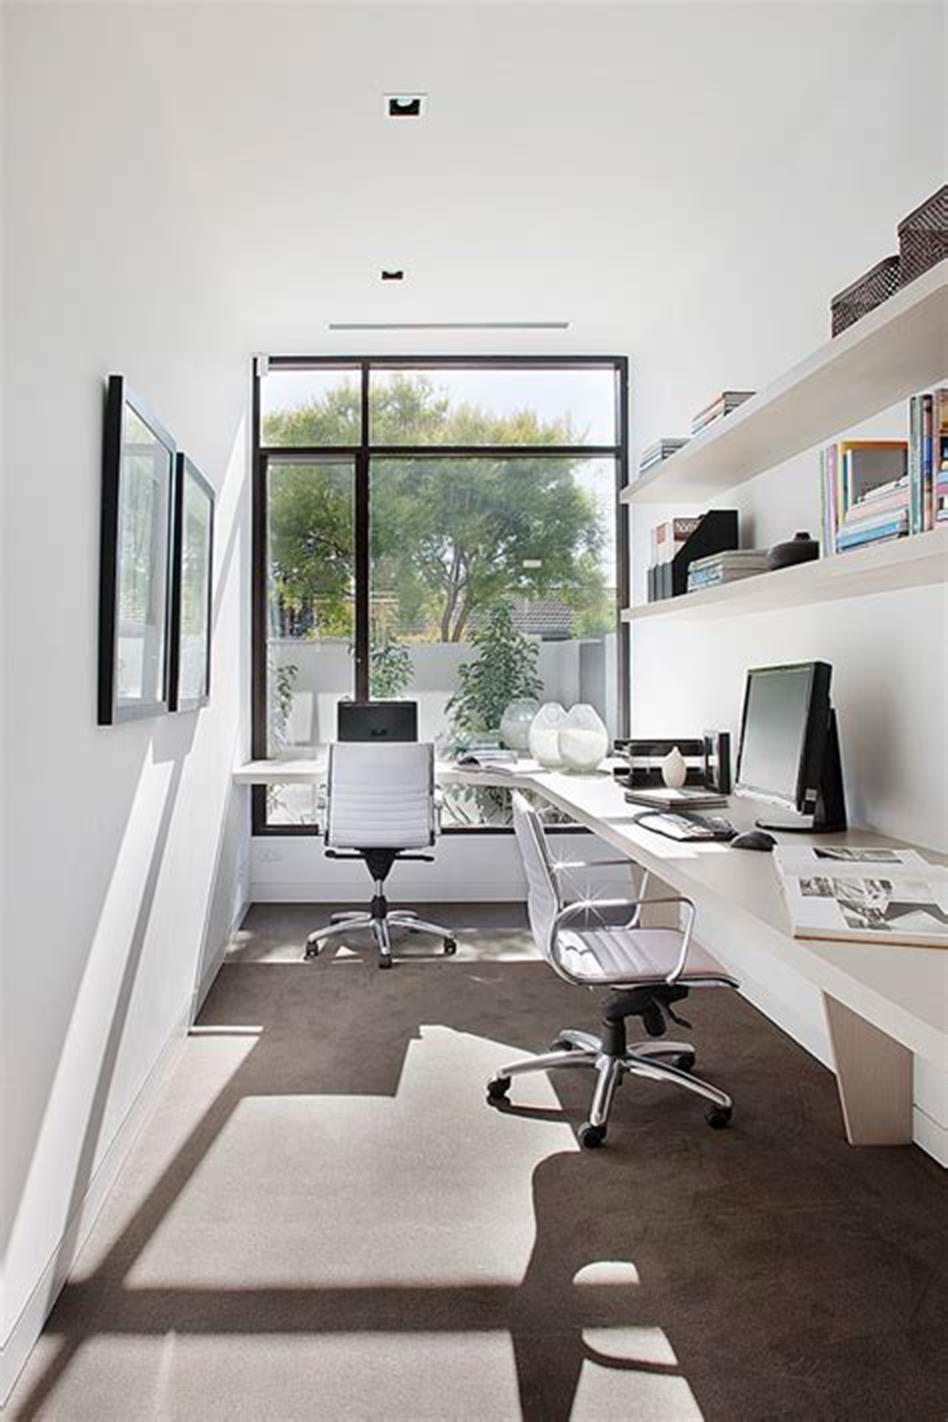 50 Best Small Space Office Decorating Ideas On a Budget 2019 3